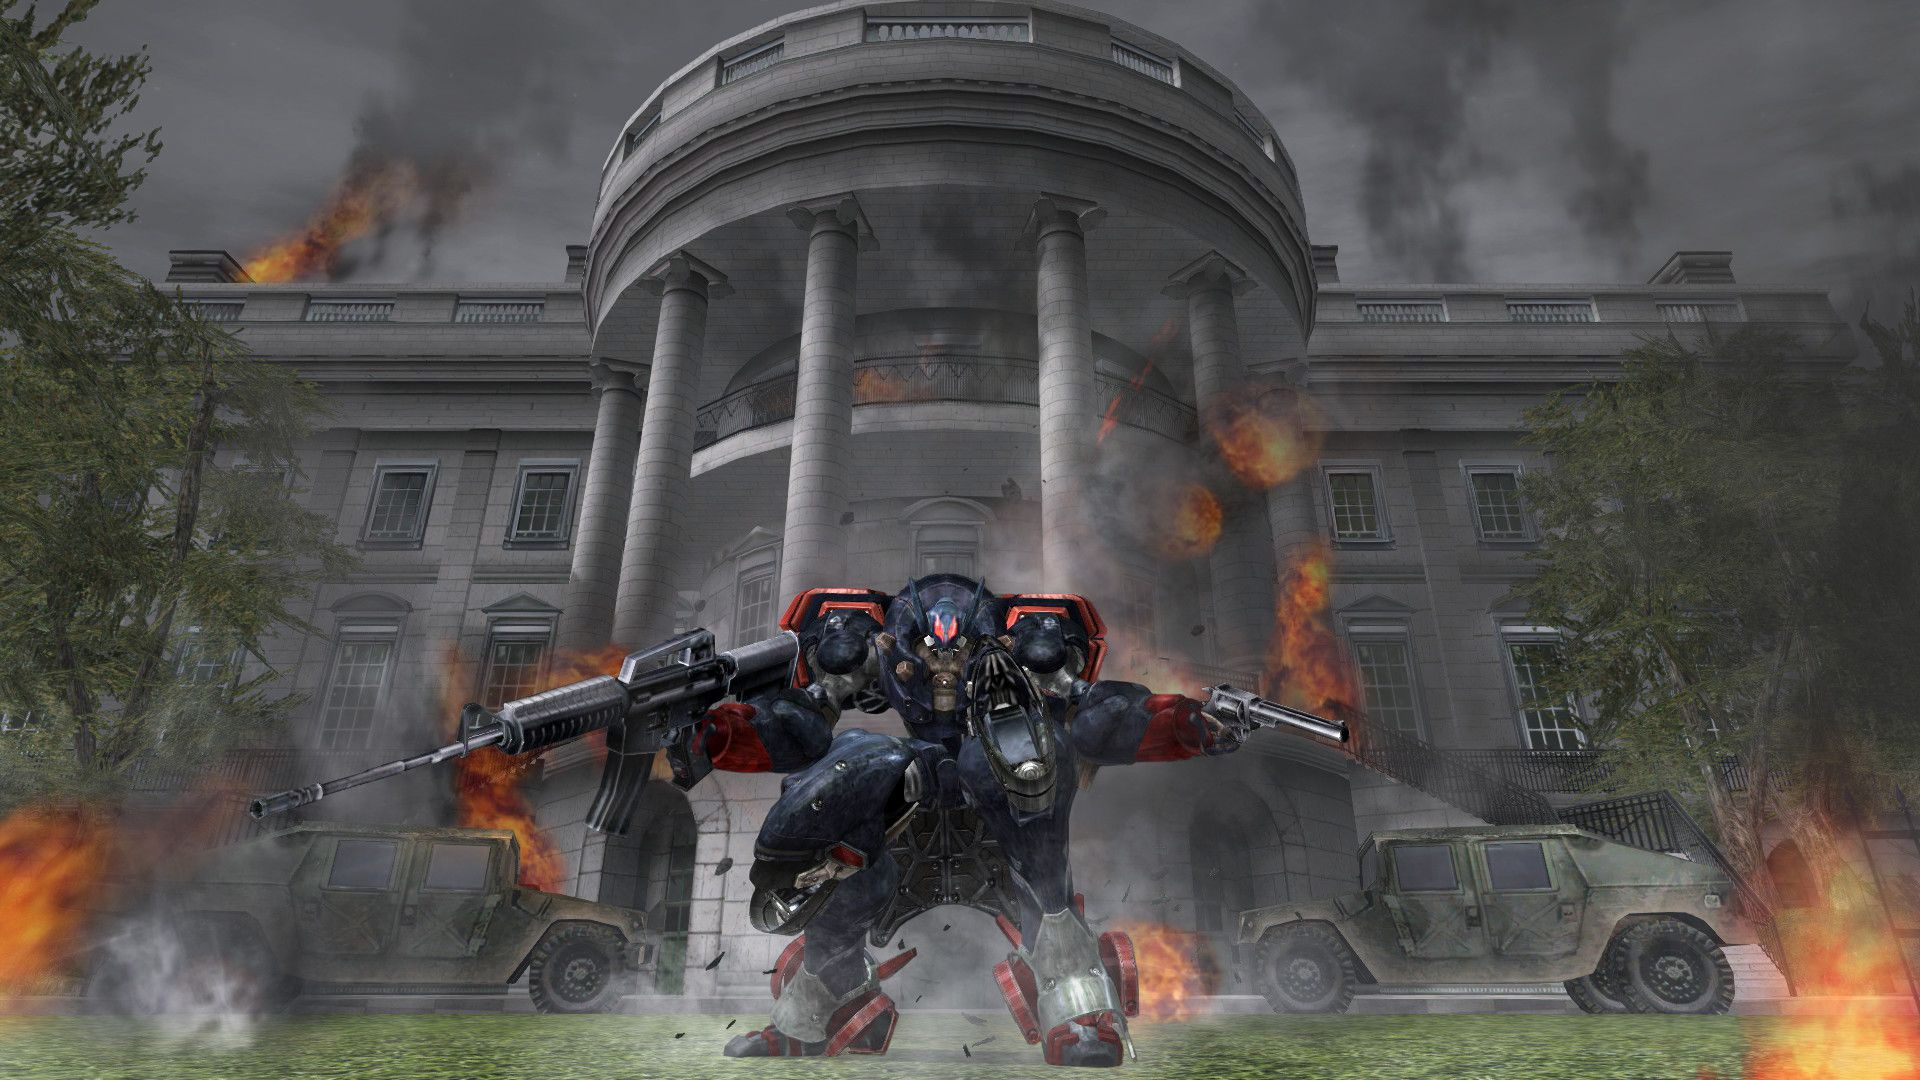 President Mciahel Wislon from Metal Wolf Chaos XD on the lawn in front of the Whitehouse, in a big mech suit and holding a machine gun and a revolver.